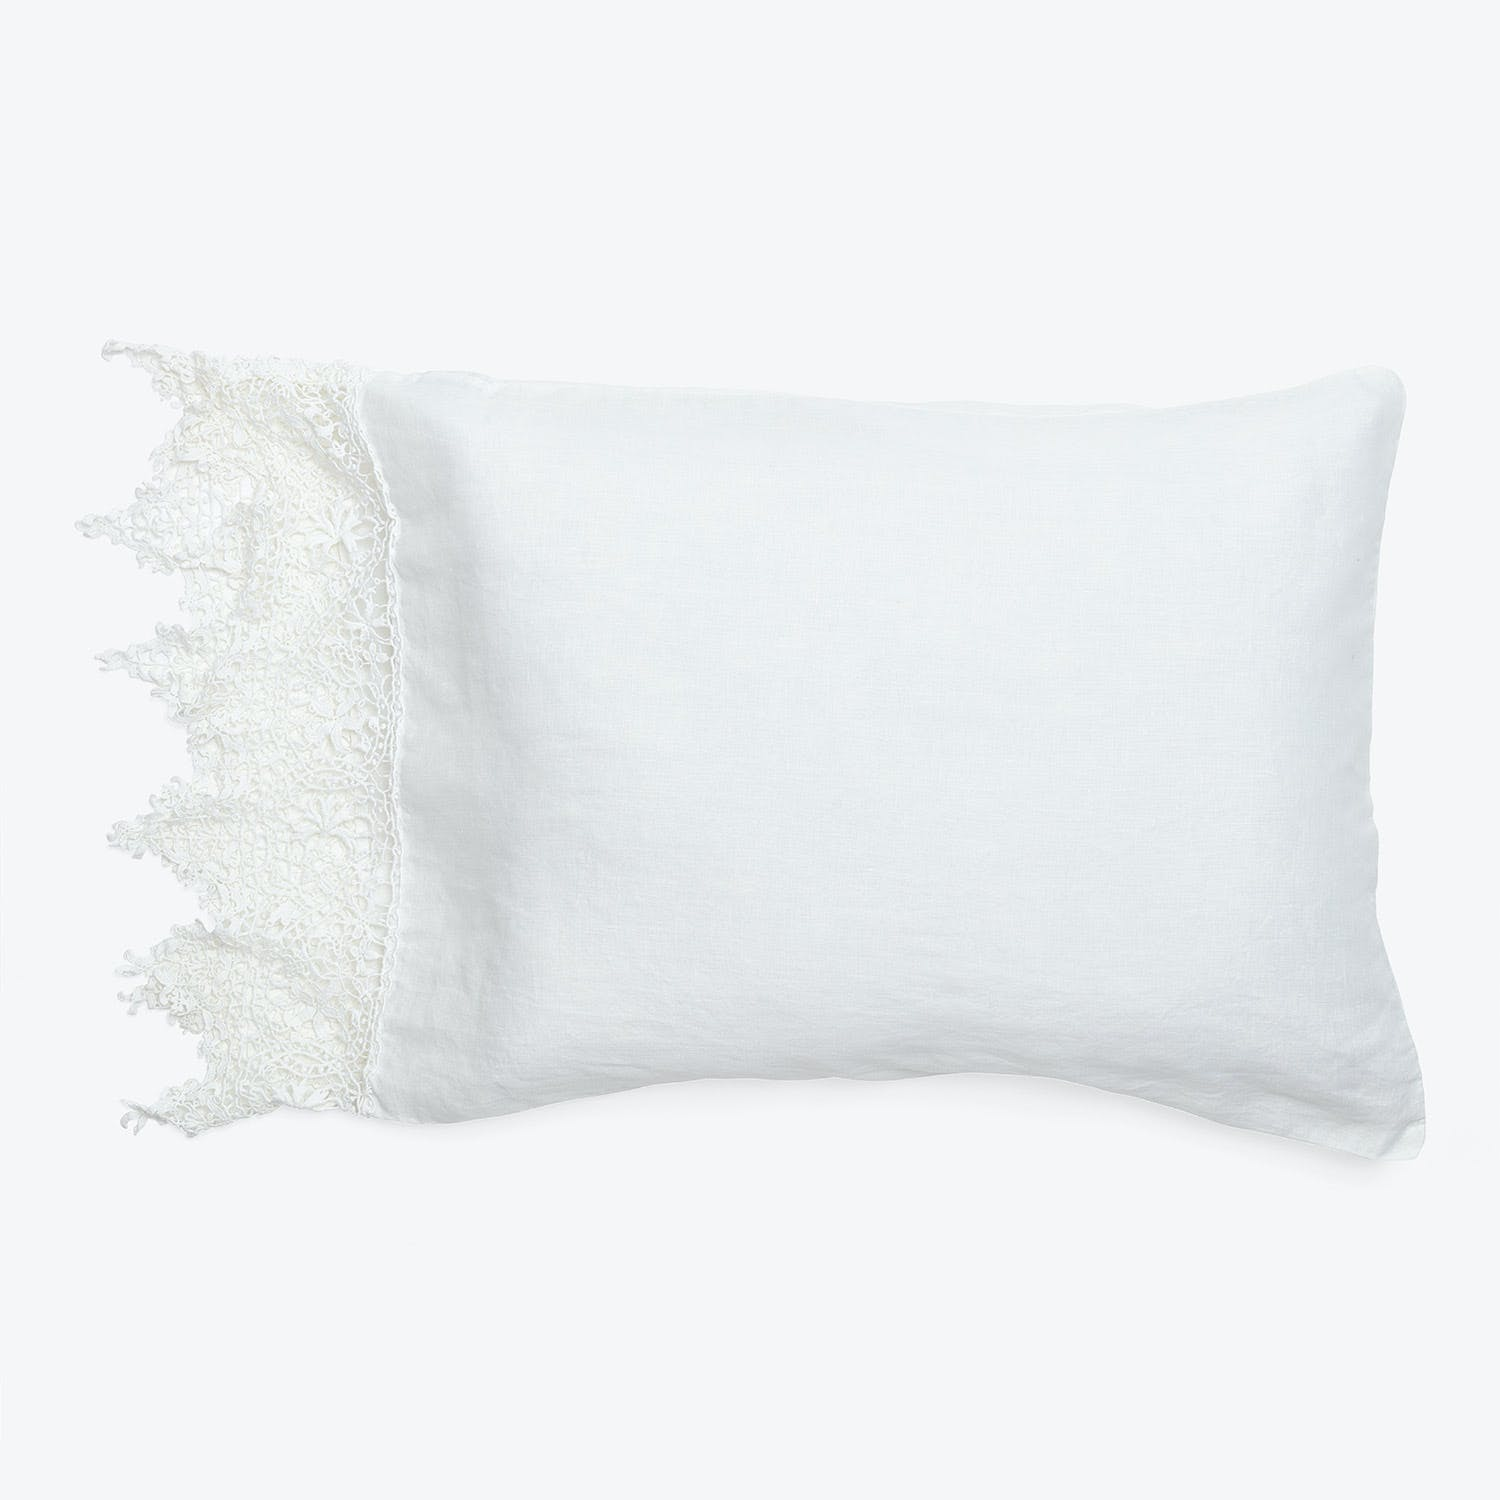 Bella Notte Frida King Pillowcase White